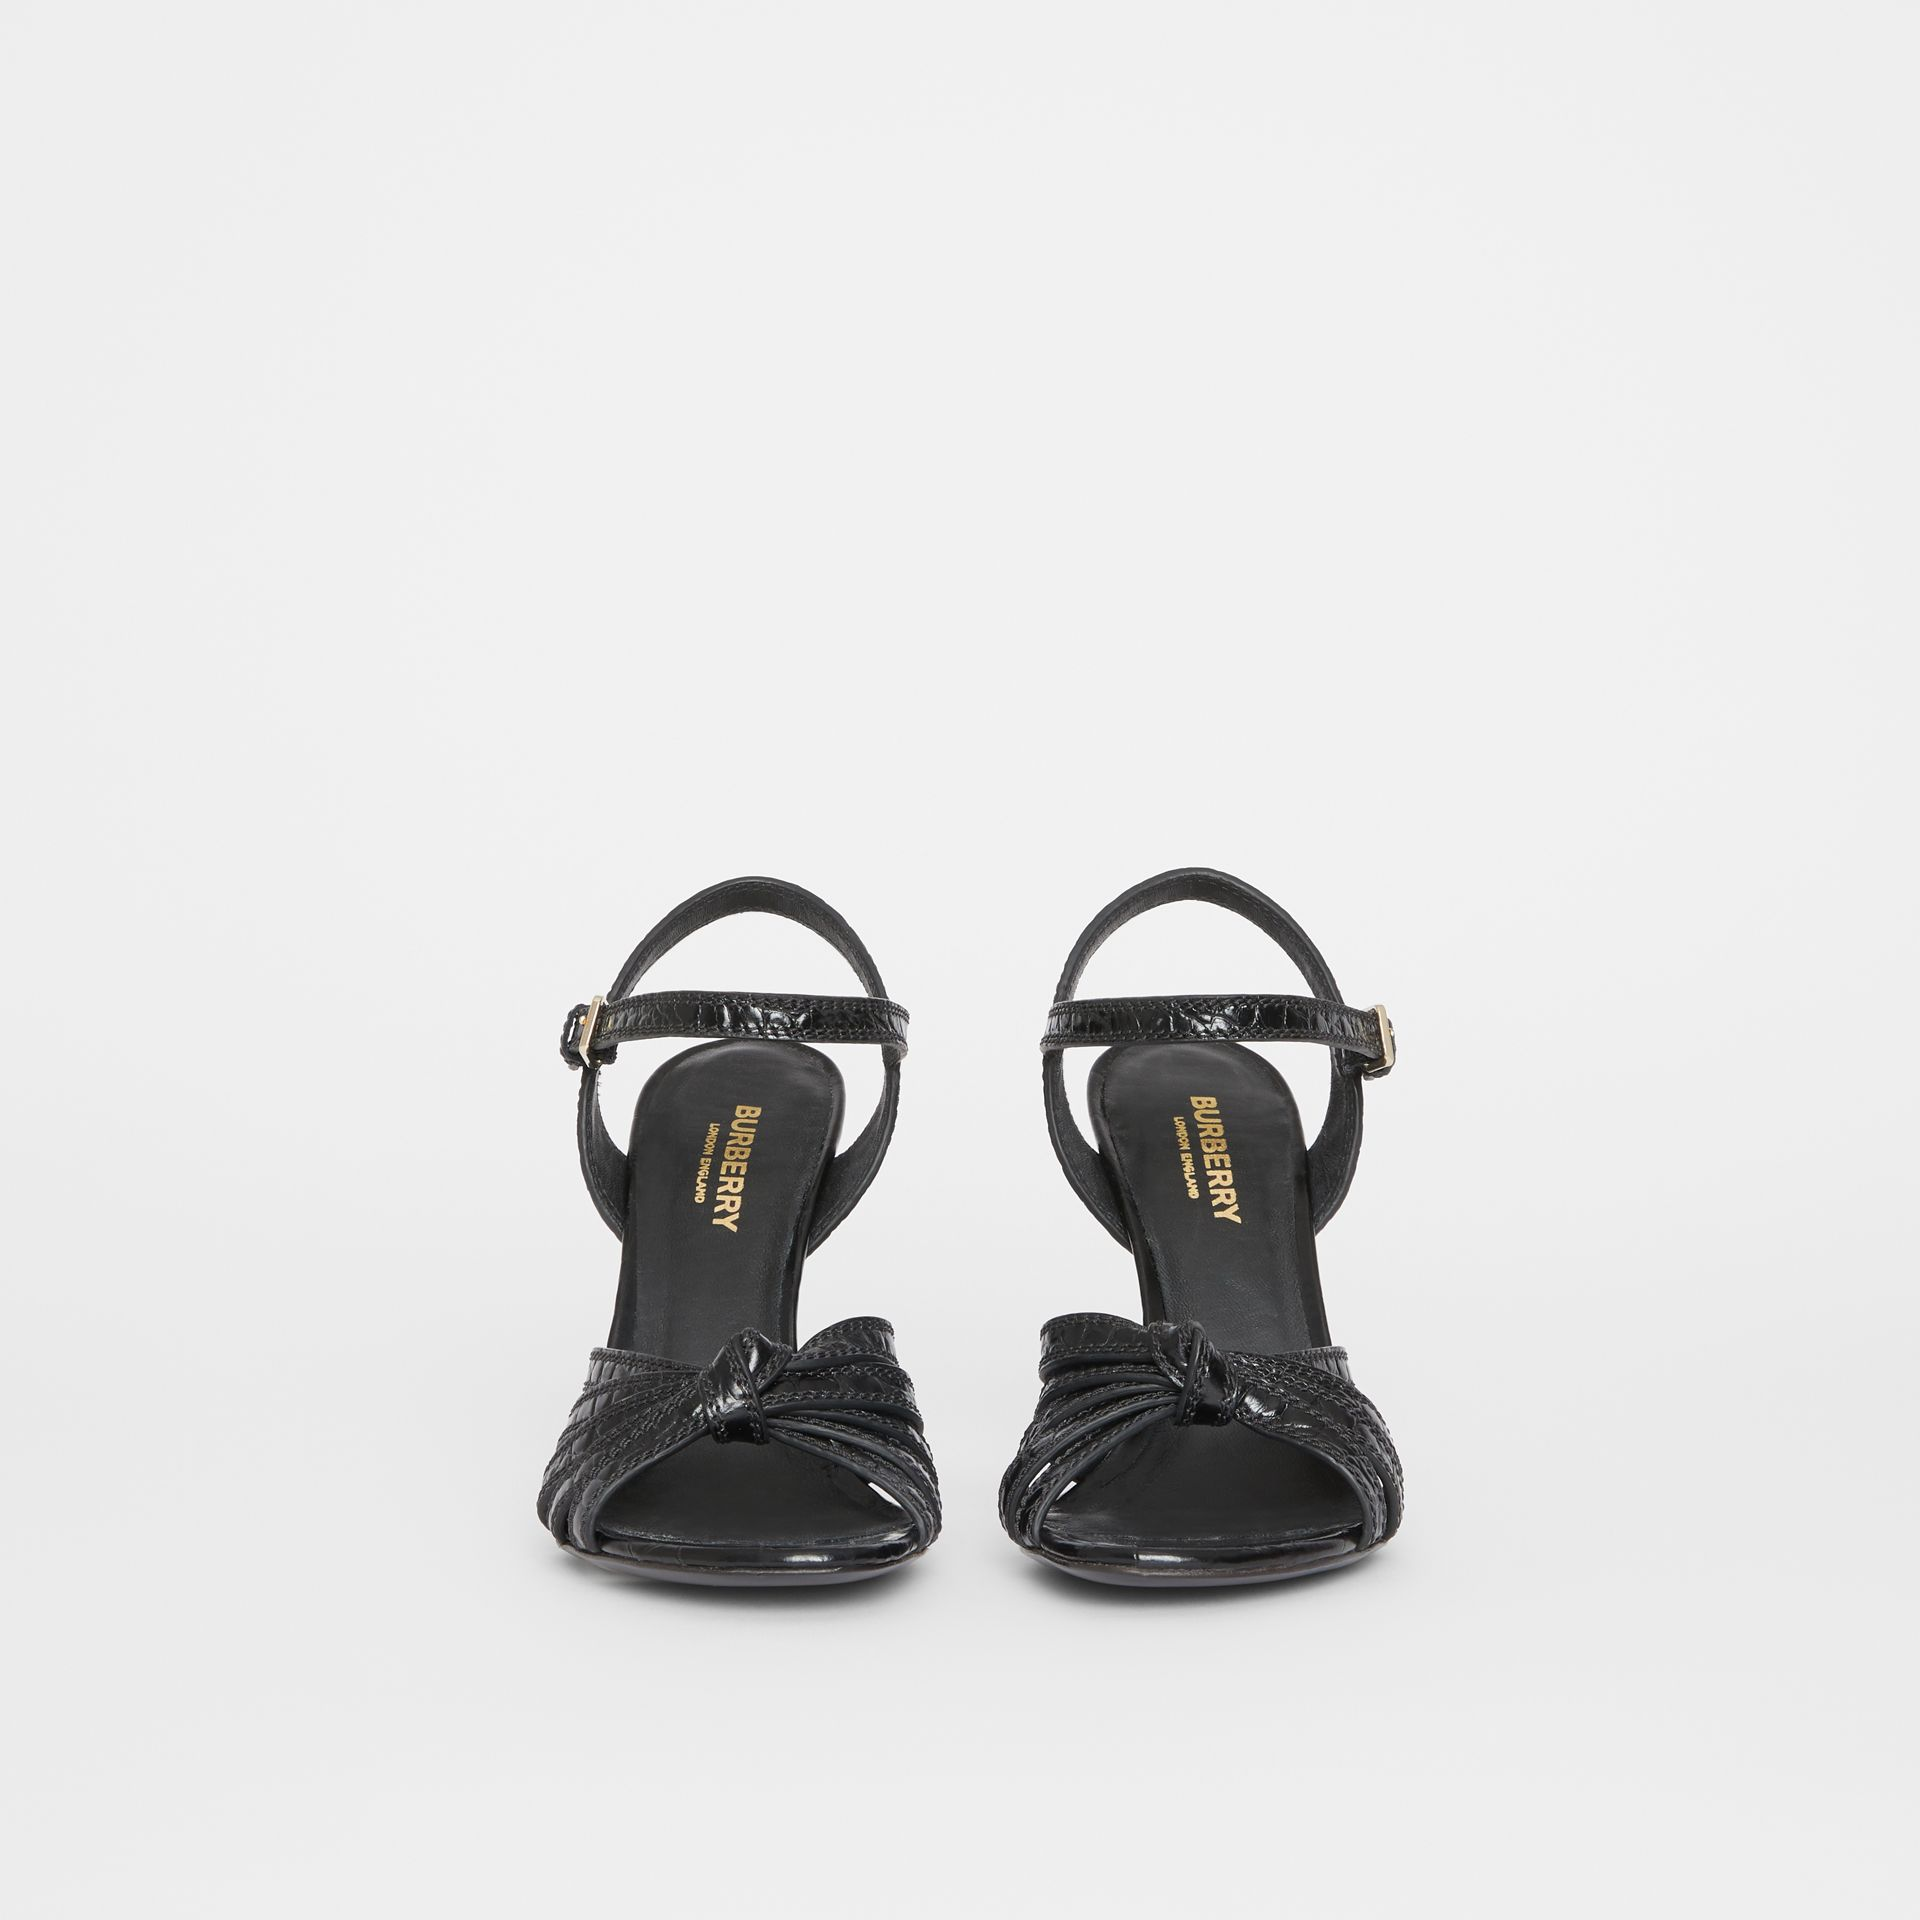 Knot Detail Embossed Leather Sandals in Black - Women | Burberry United States - gallery image 2